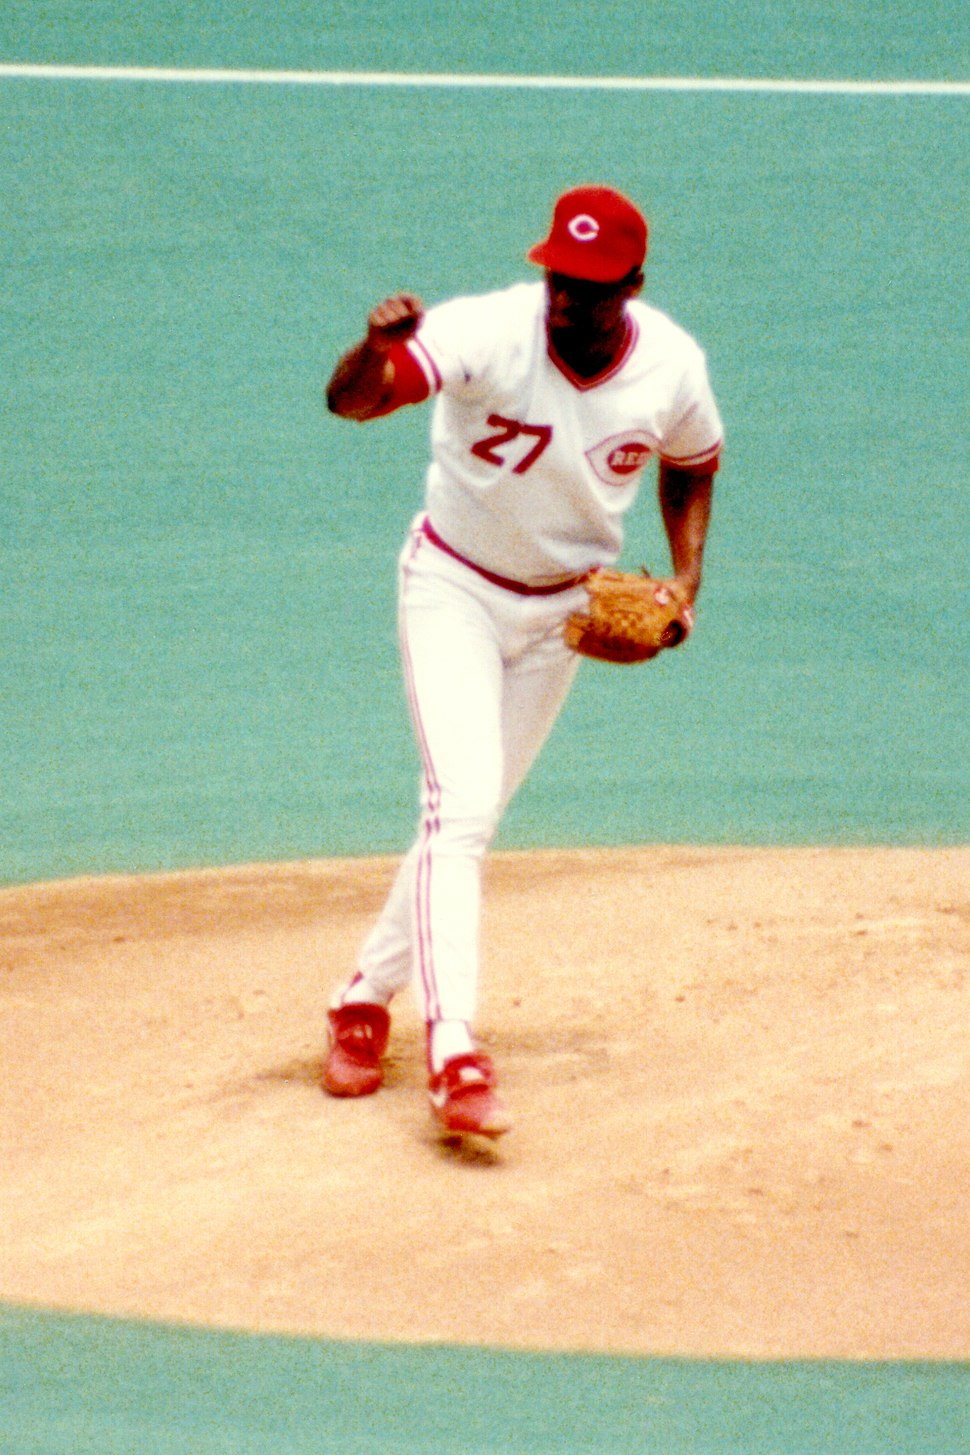 Jose Rijo pitching for the Cincinnati Reds in Riverfront Stadium in 1990